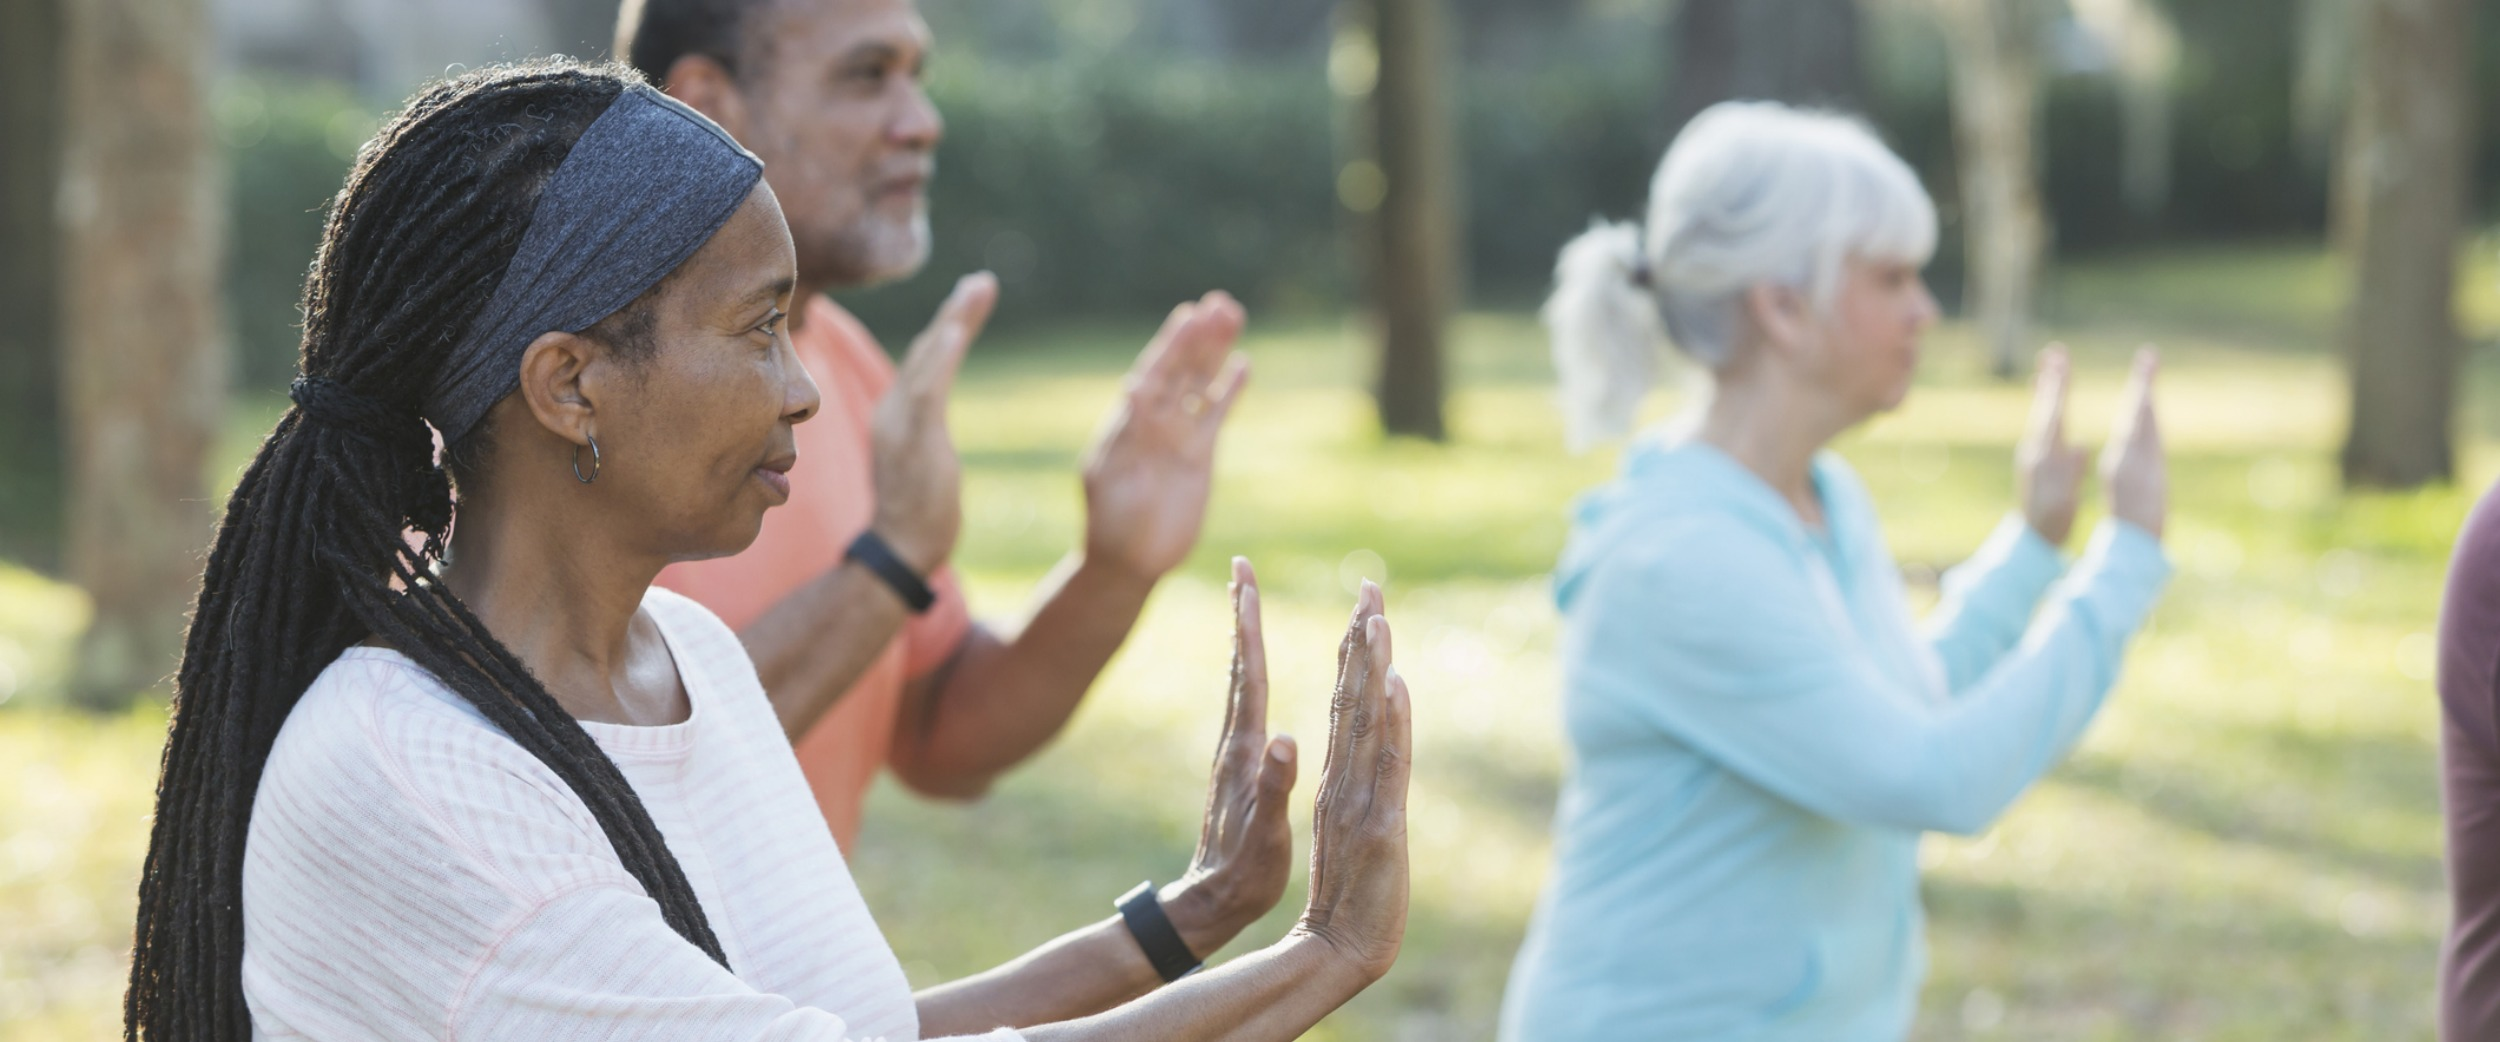 tai chi and qigong for breast cancer